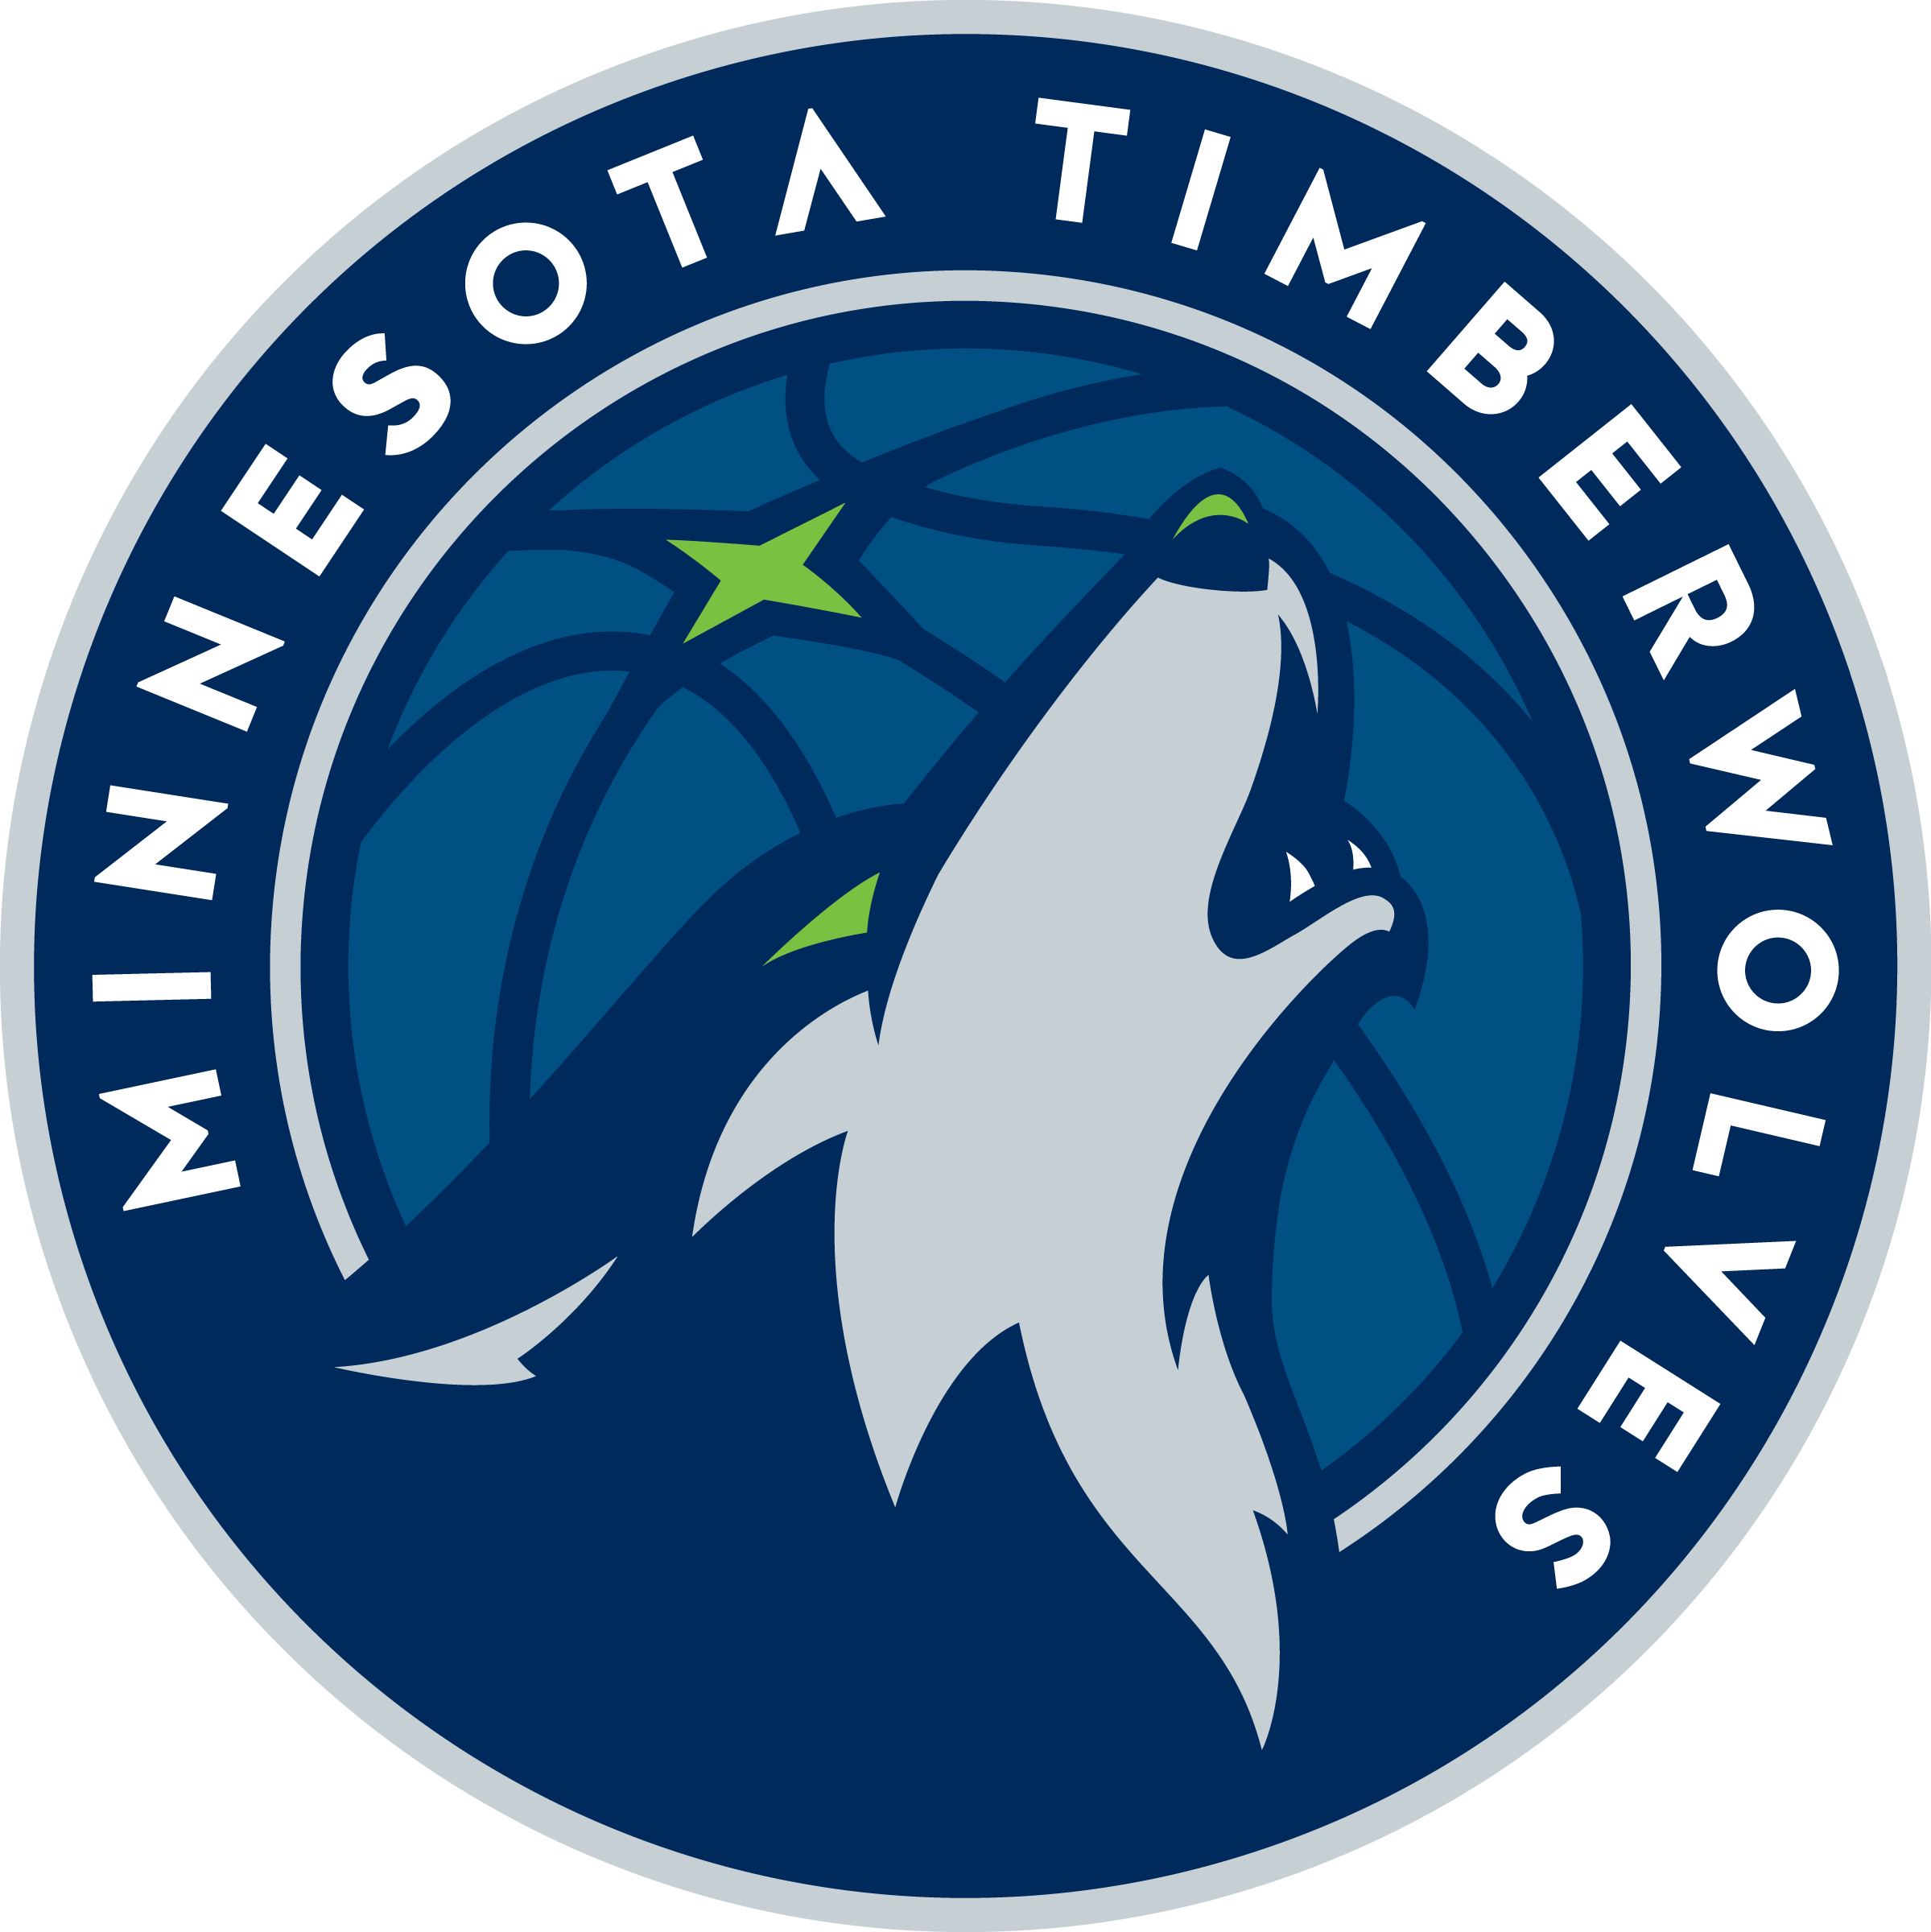 The logo was created over the past 12 months as part of a collaborative  effort between the Timberwolves ownership, team executives, PlusPng.com  - Minnesota Timberwolves PNG